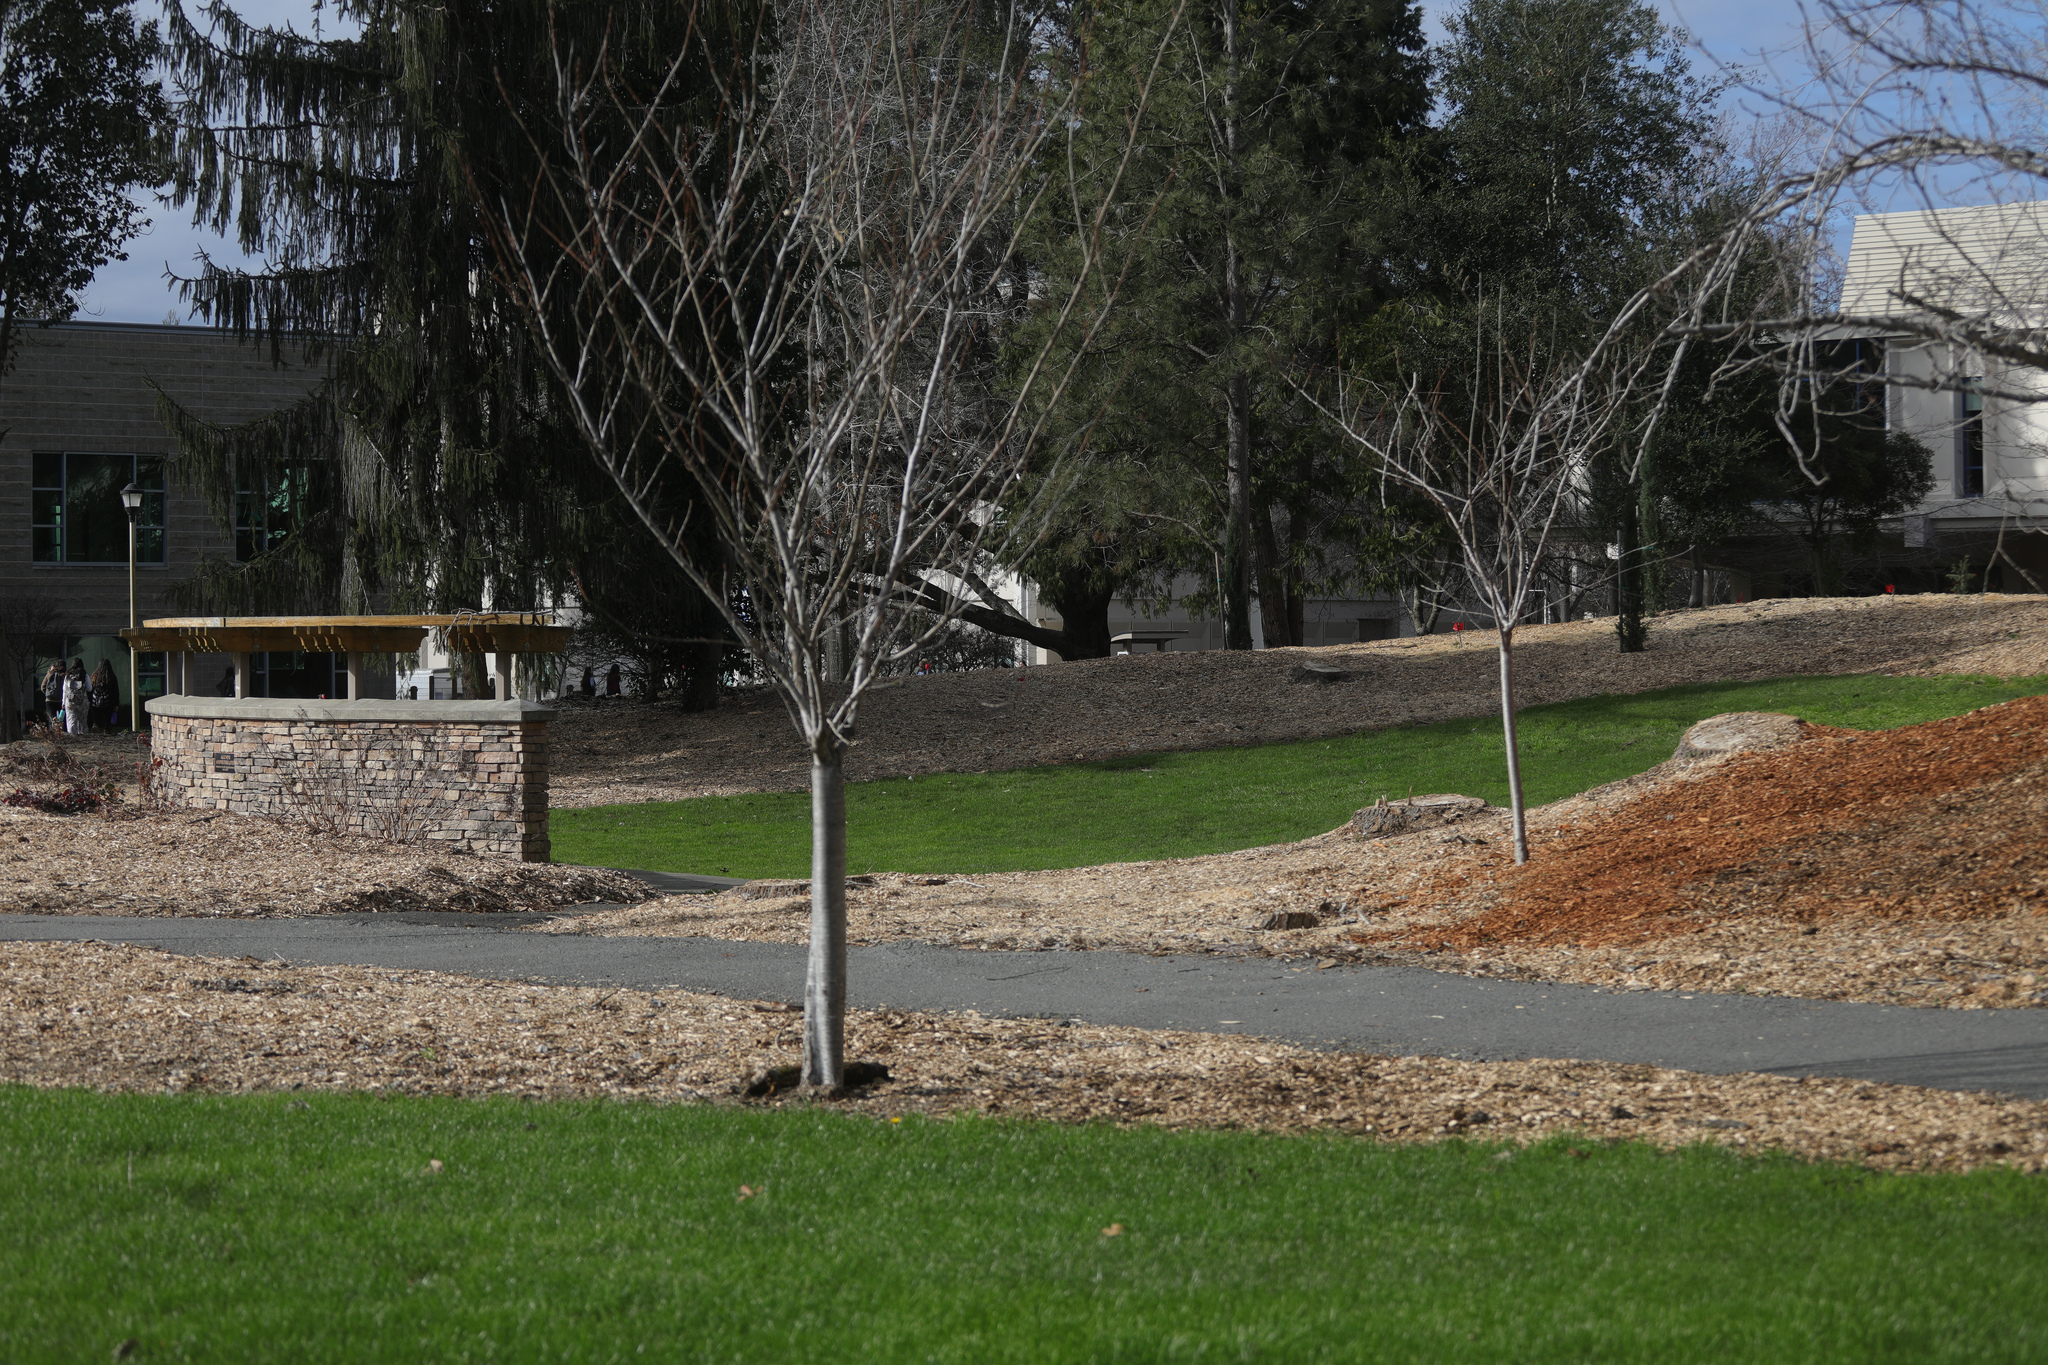 The amphitheater between Ives Hall and Salazar Hall had several trees removed, although more were planted in their place.